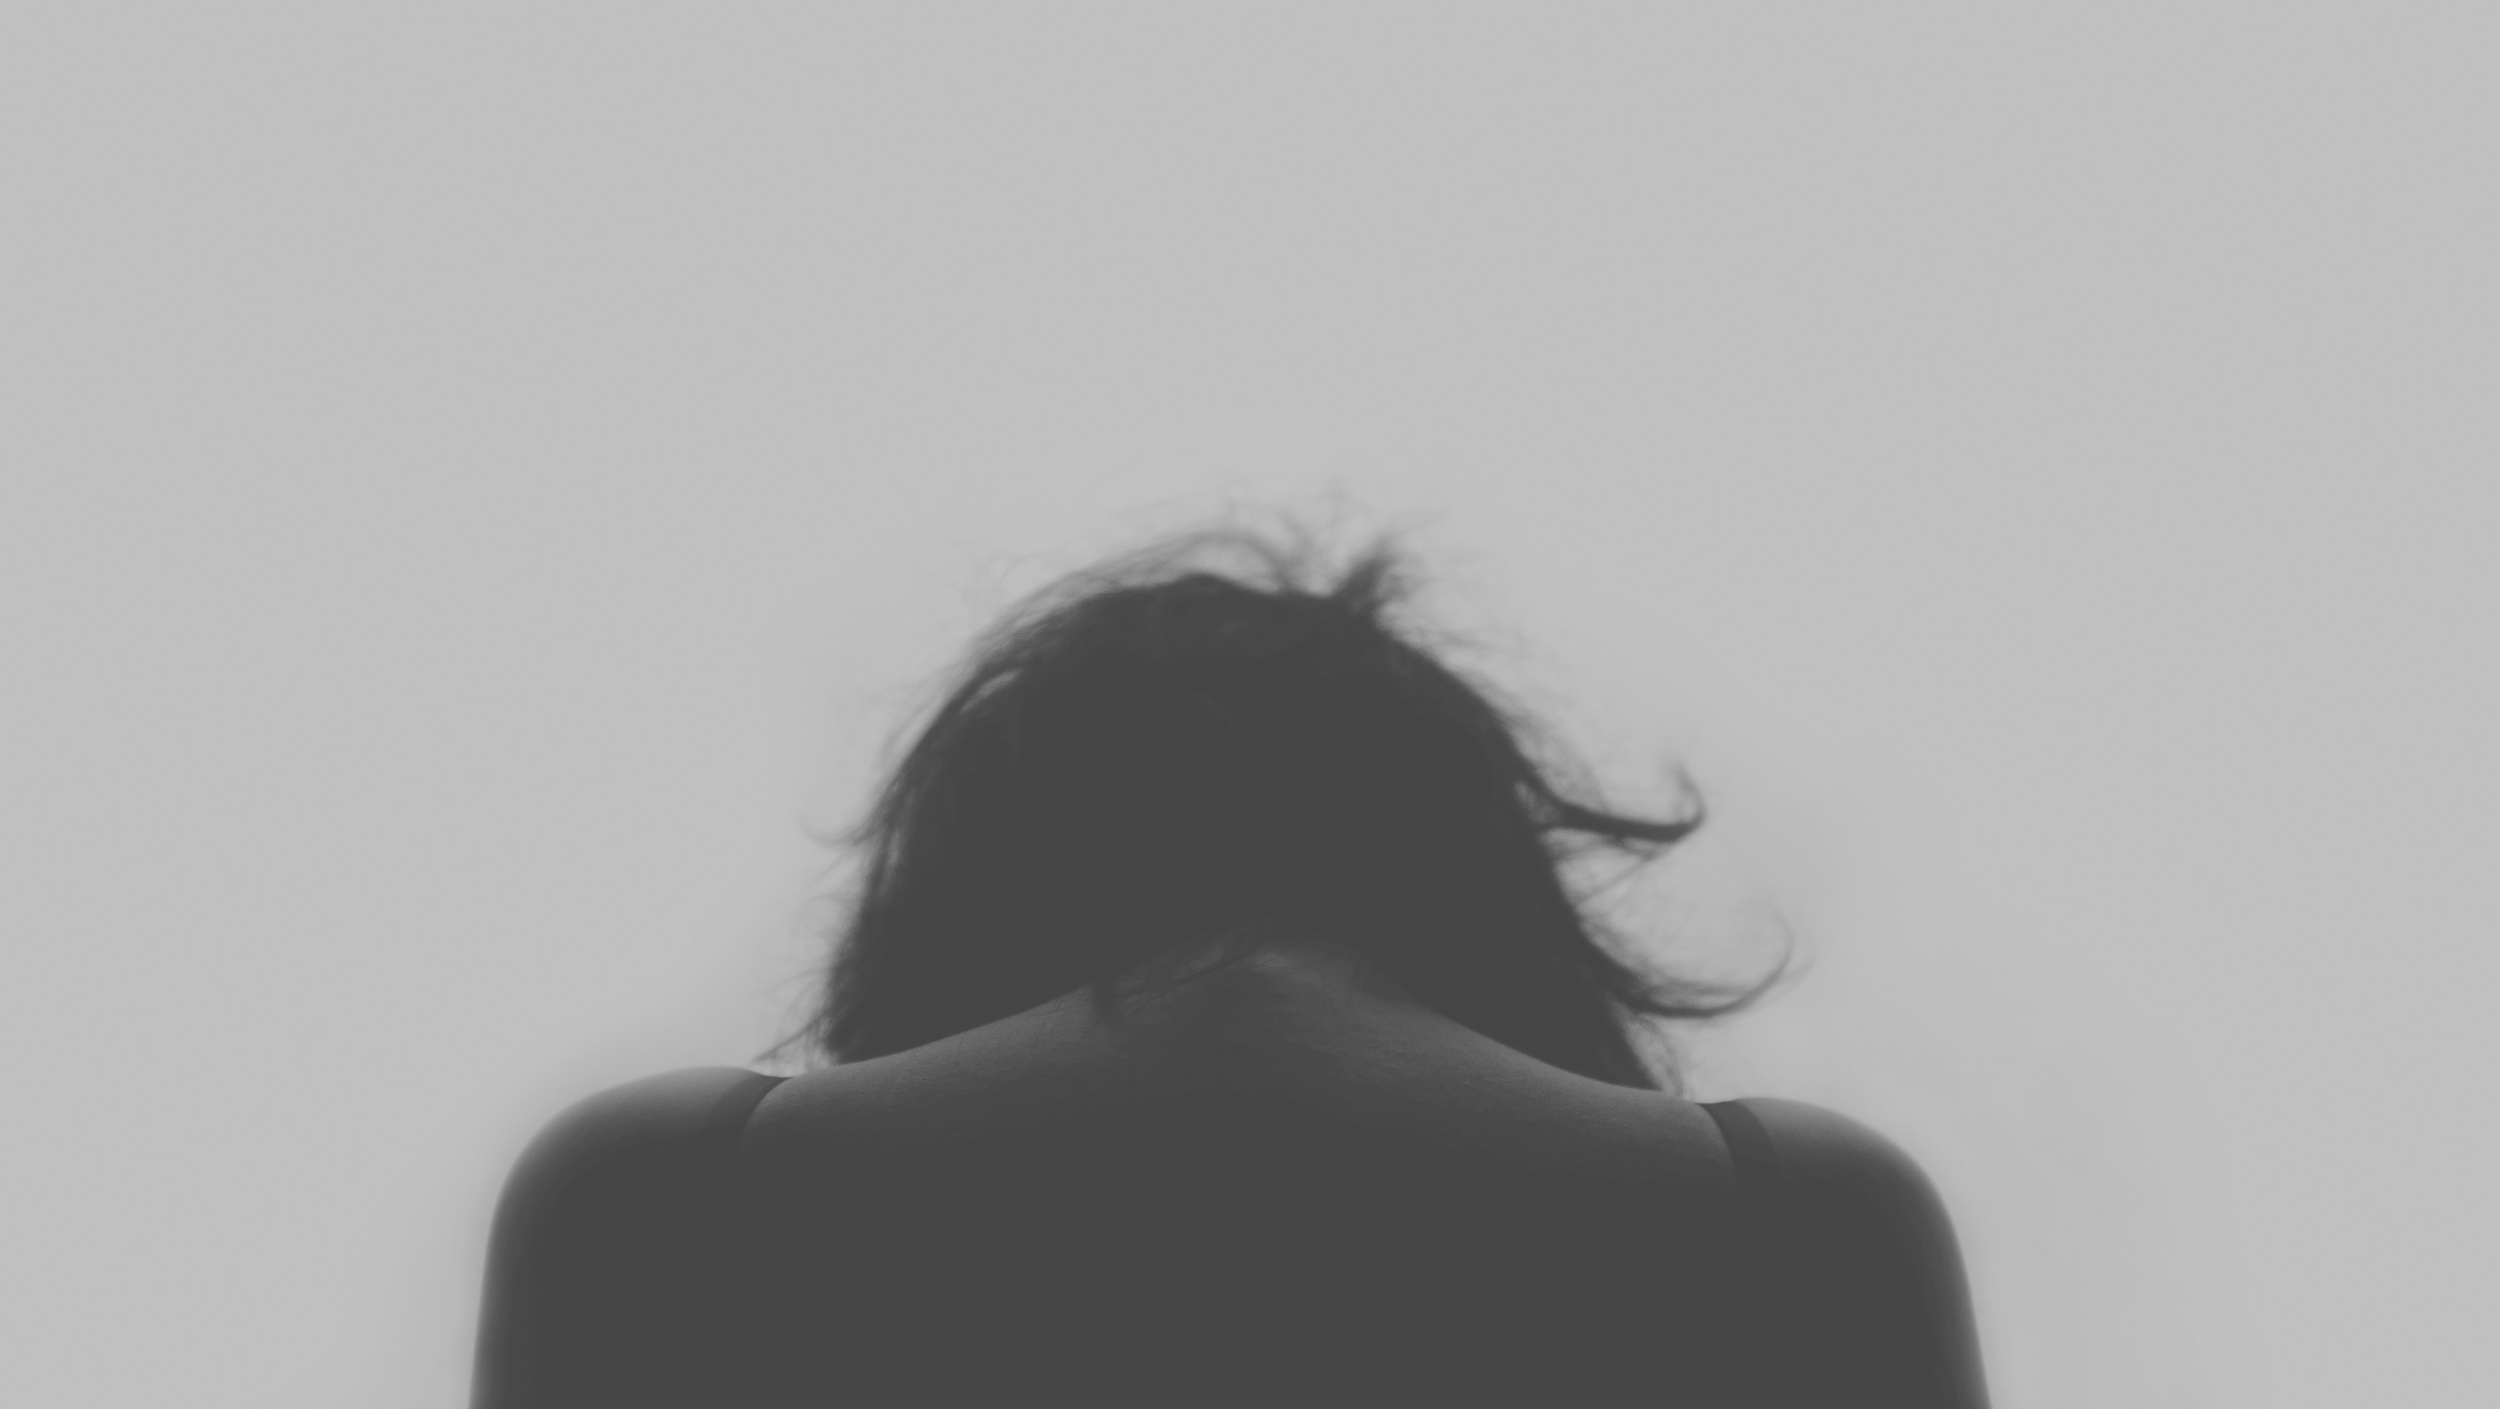 The impacts of PMDD on quality of life and relationships can be extreme